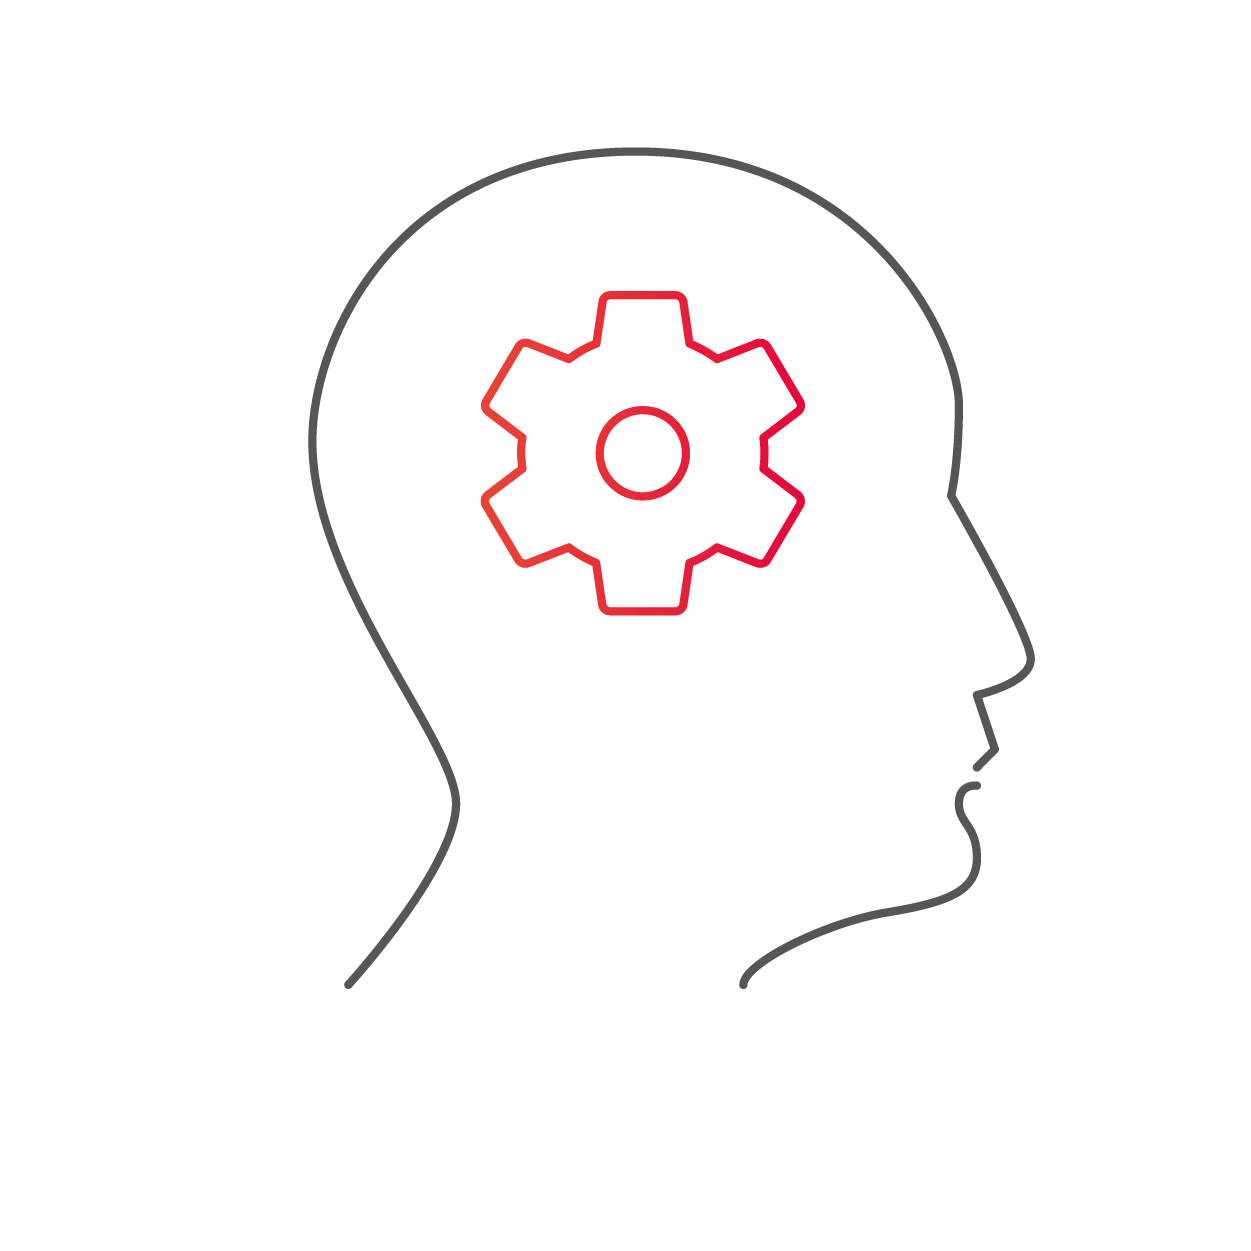 Head with Settings Wheel